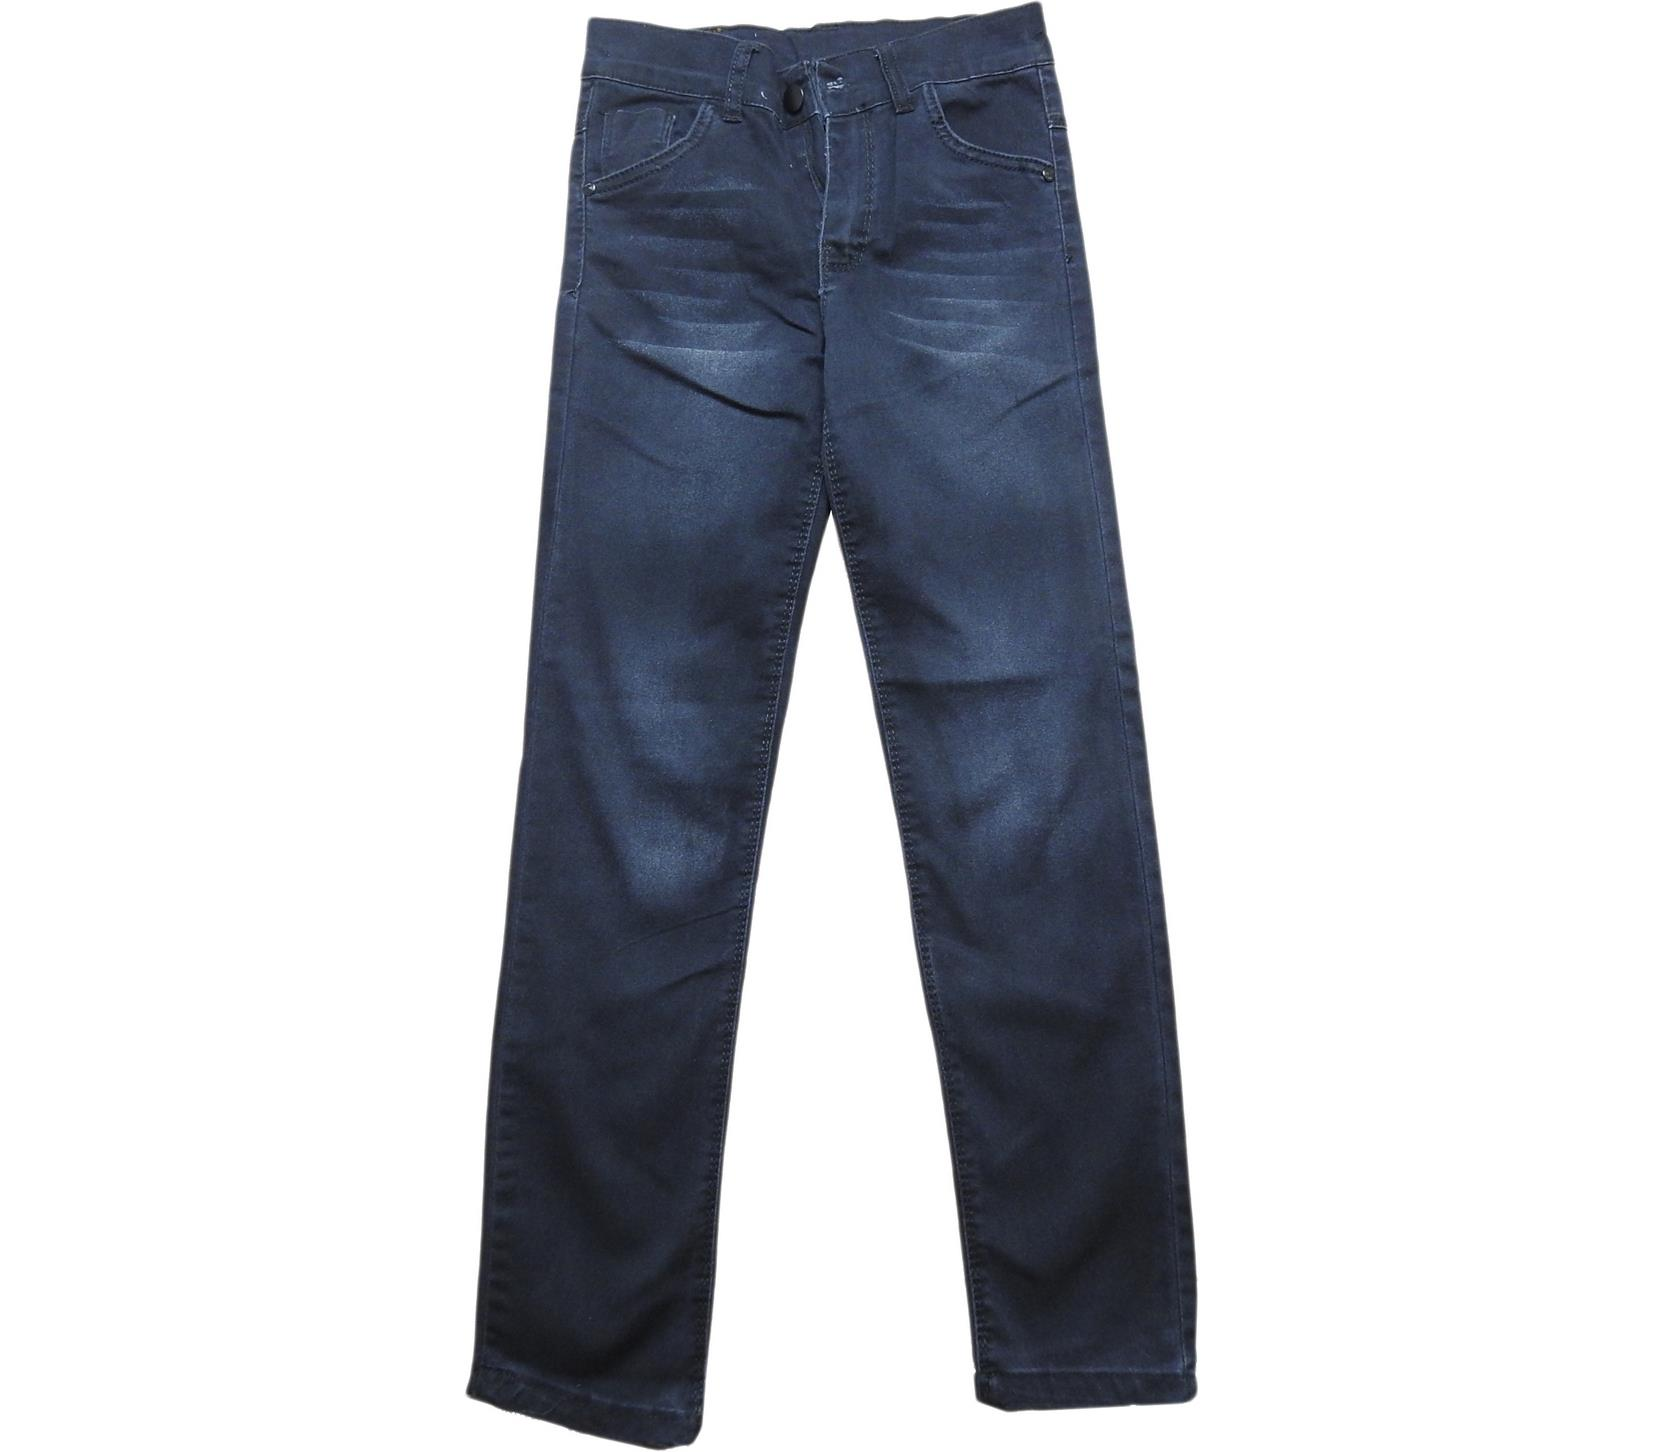 4080 Wholesale jeans pant for boy kids clothes (8-9-10-11-12 age)